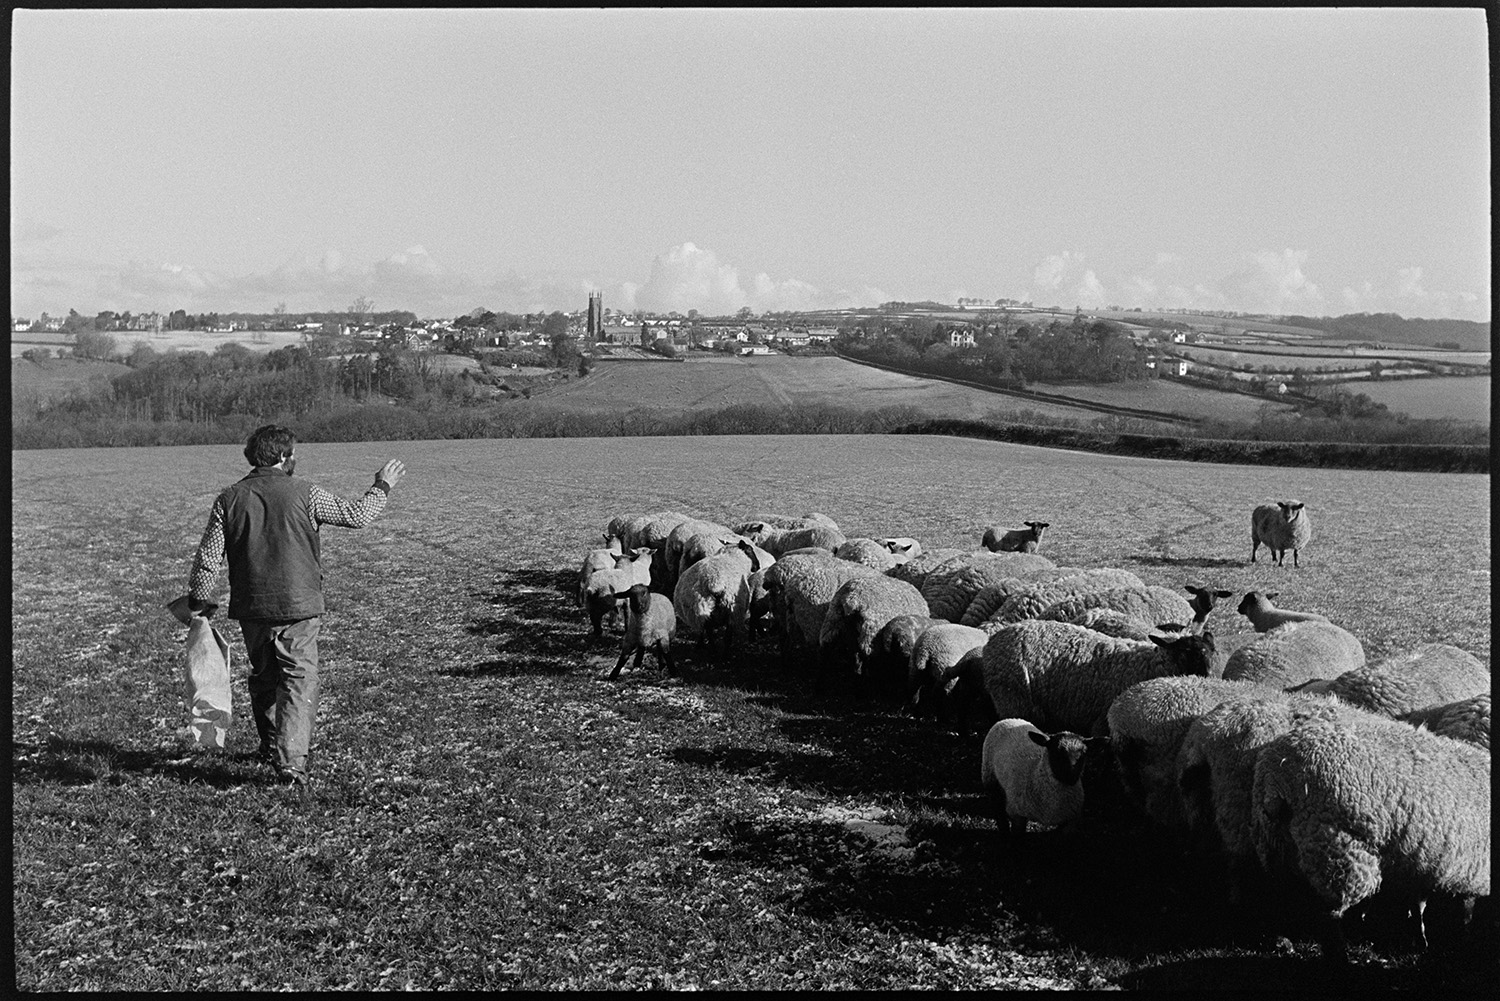 Snow, farmer feeding and counting sheep. <br /> [A man counting sheep after feeding them in a field at Parsonage Farm, Chulmleigh. The town of Chulmleigh, including the church tower can be seen in the background.]